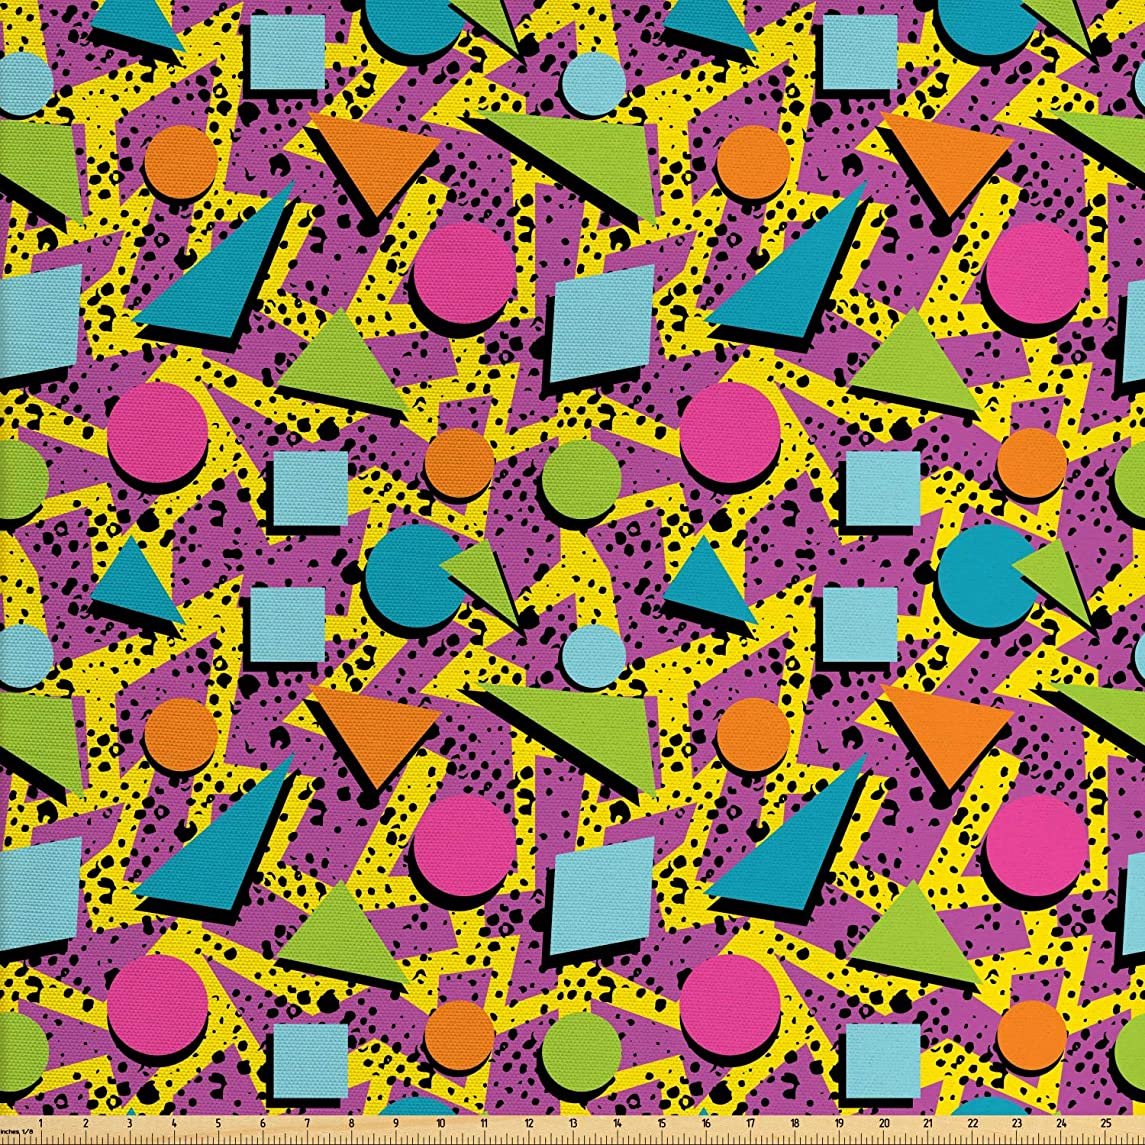 Lunarable Colorful Fabric by The Yard, Vibrant Colored Vintage Memphis Pattern in Eighties Fashion Funky Hipster Art, Decorative Fabric for Upholstery and Home Accents, 1 Yard, Multicolor